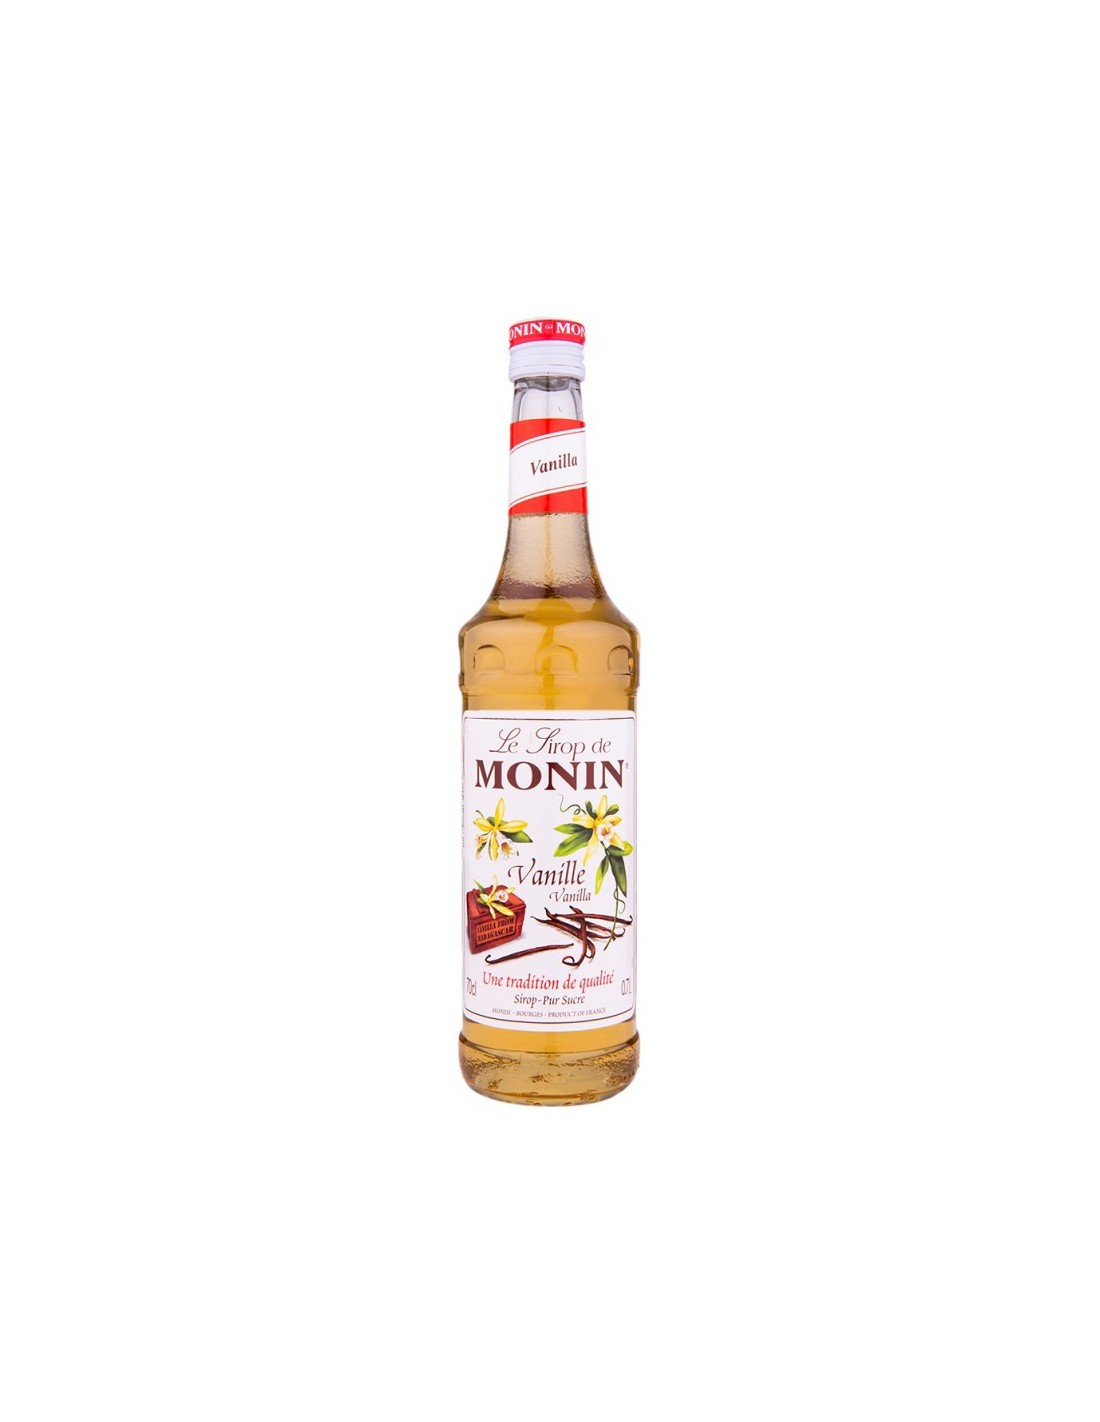 Sirop cocktail Monin Vanilla, 0.7L, Franta